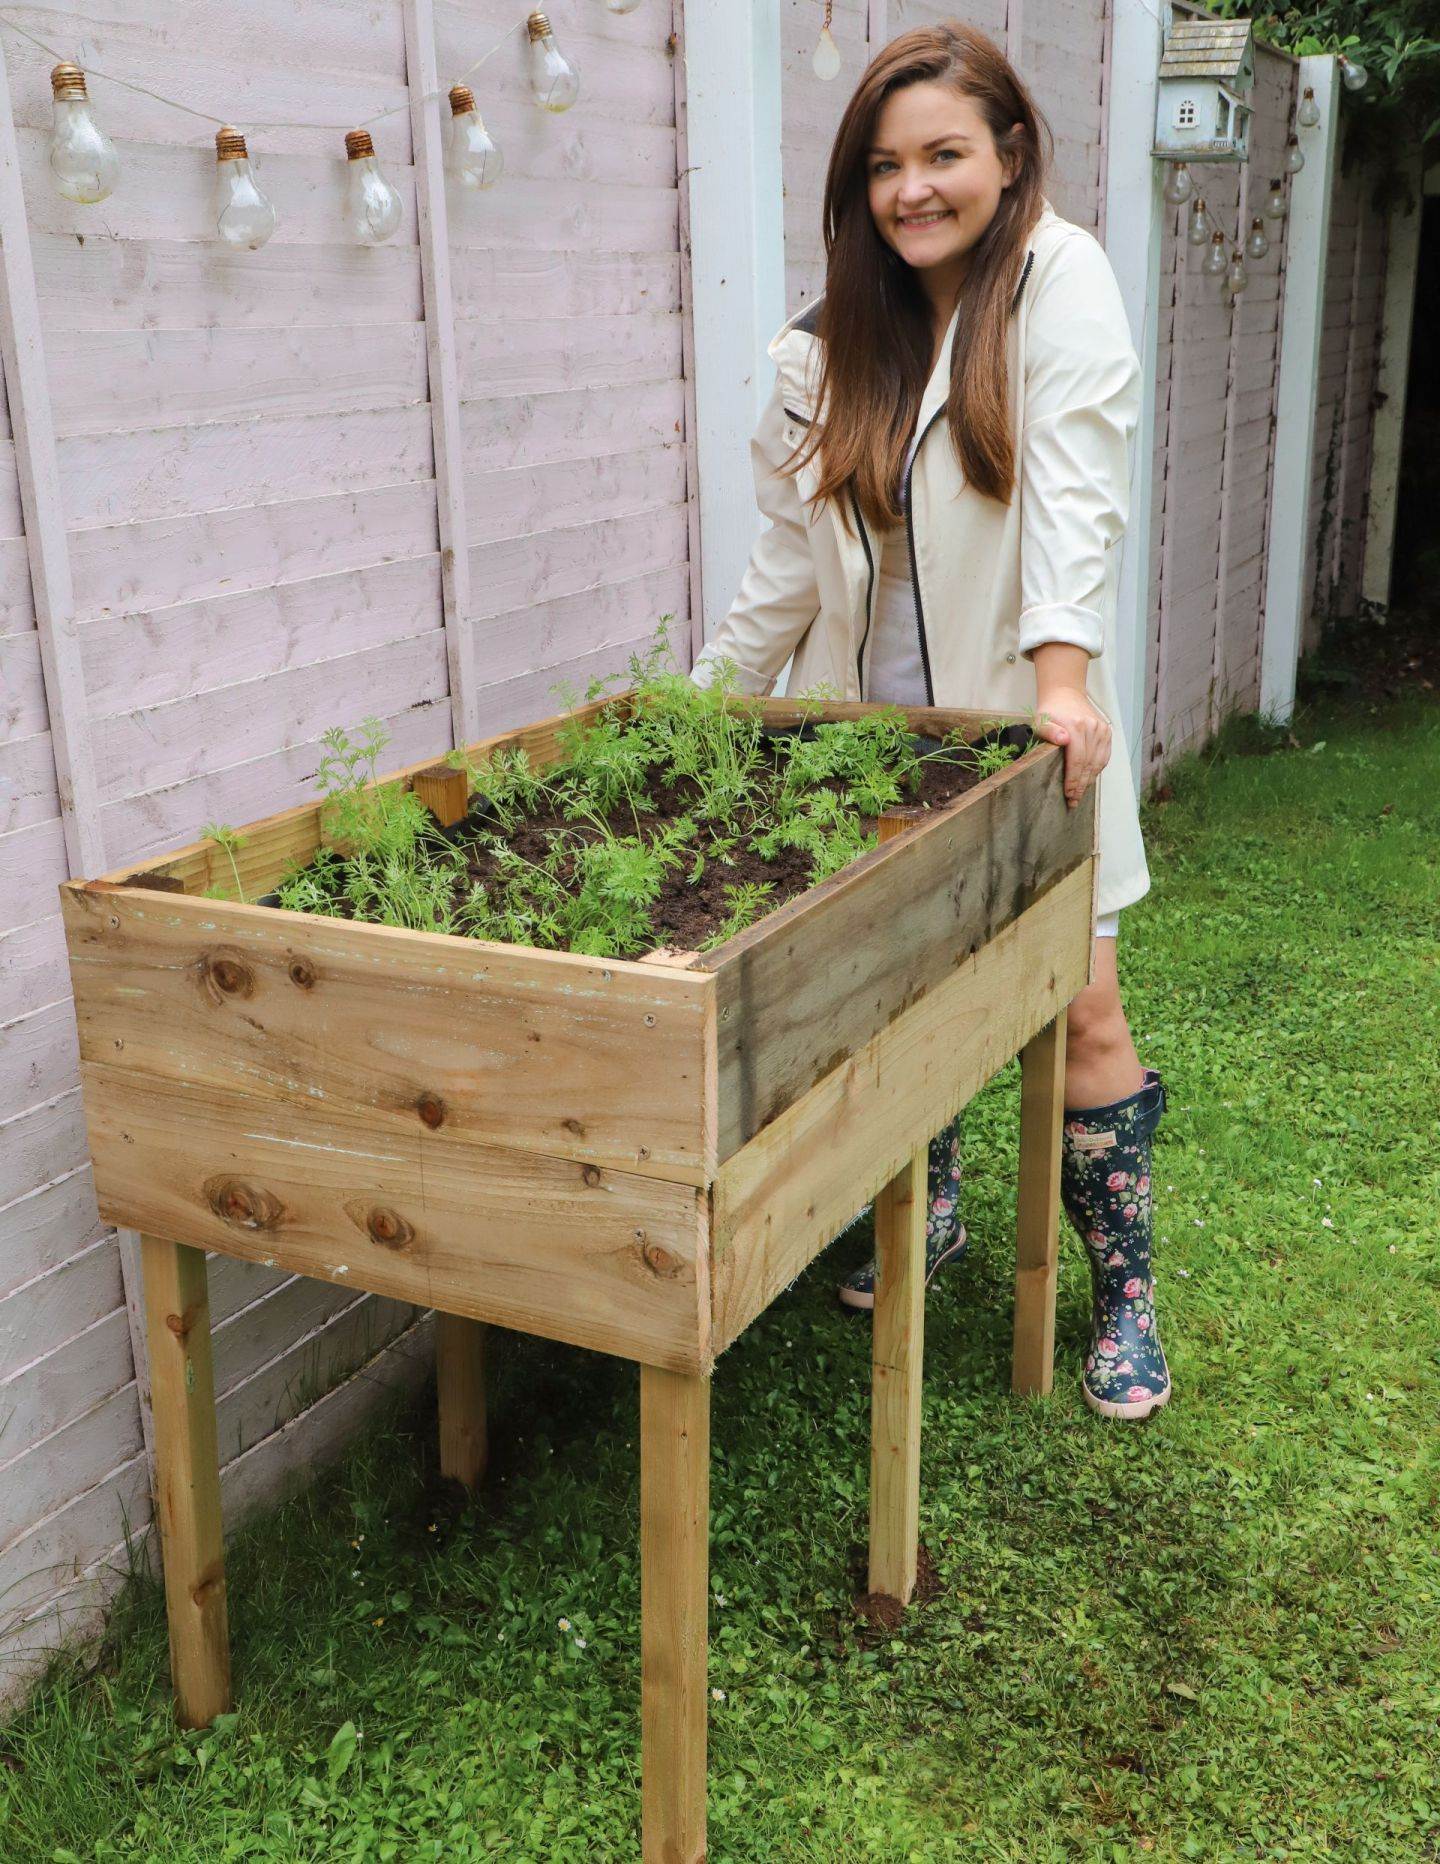 How to make a raised garden bed with legs